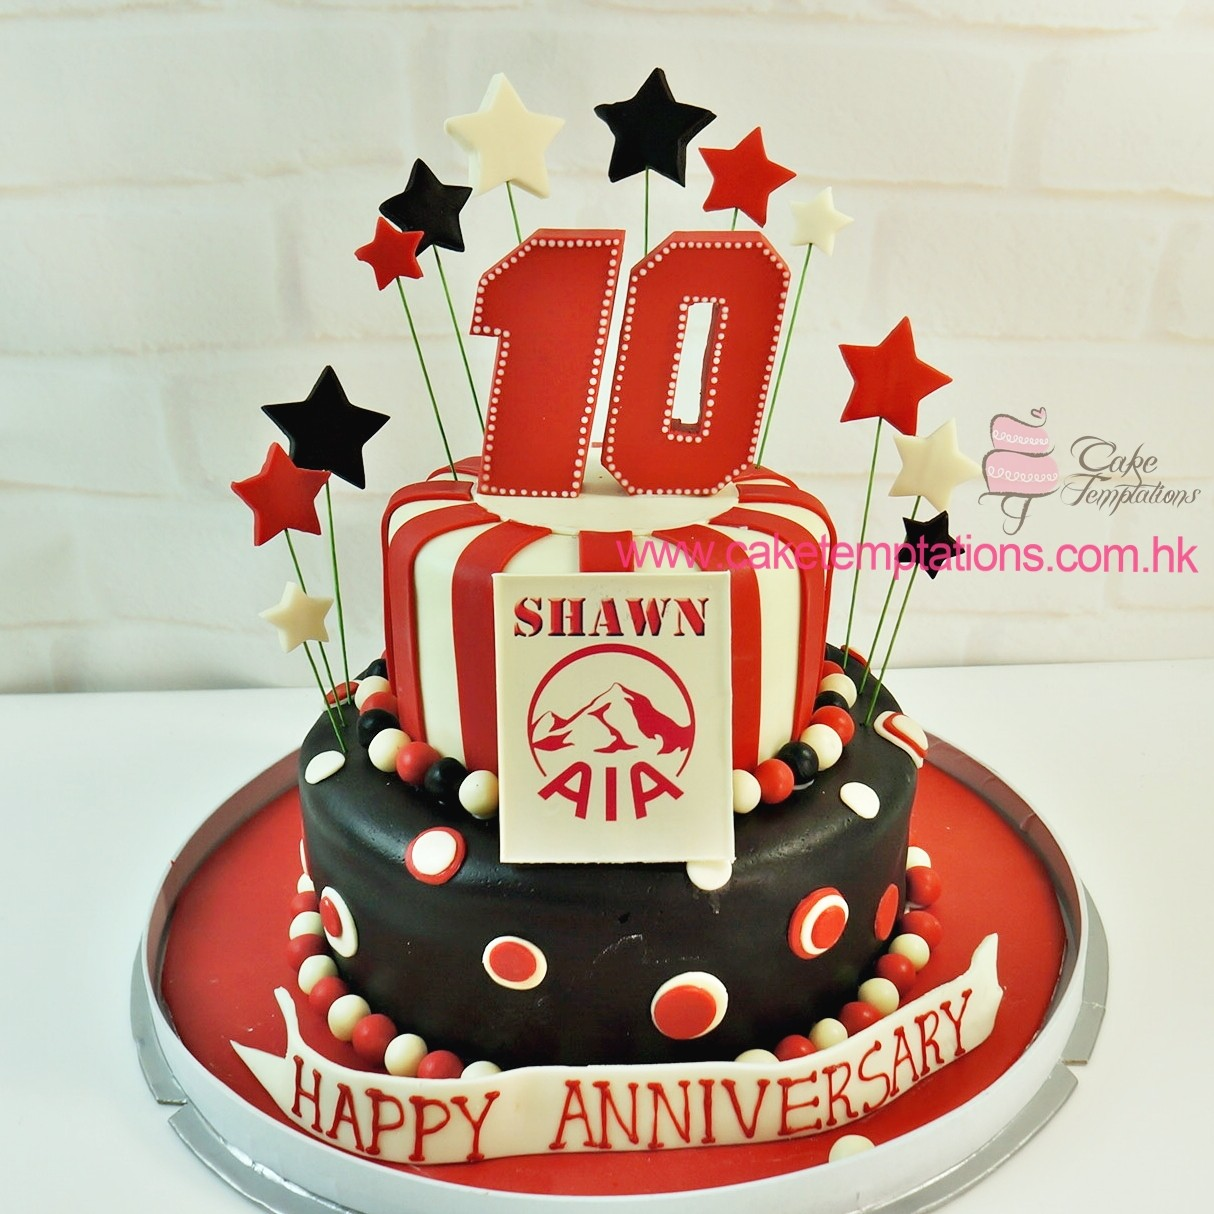 2 Layers 10 Happy Anniversary Cake Corporate Celebrity